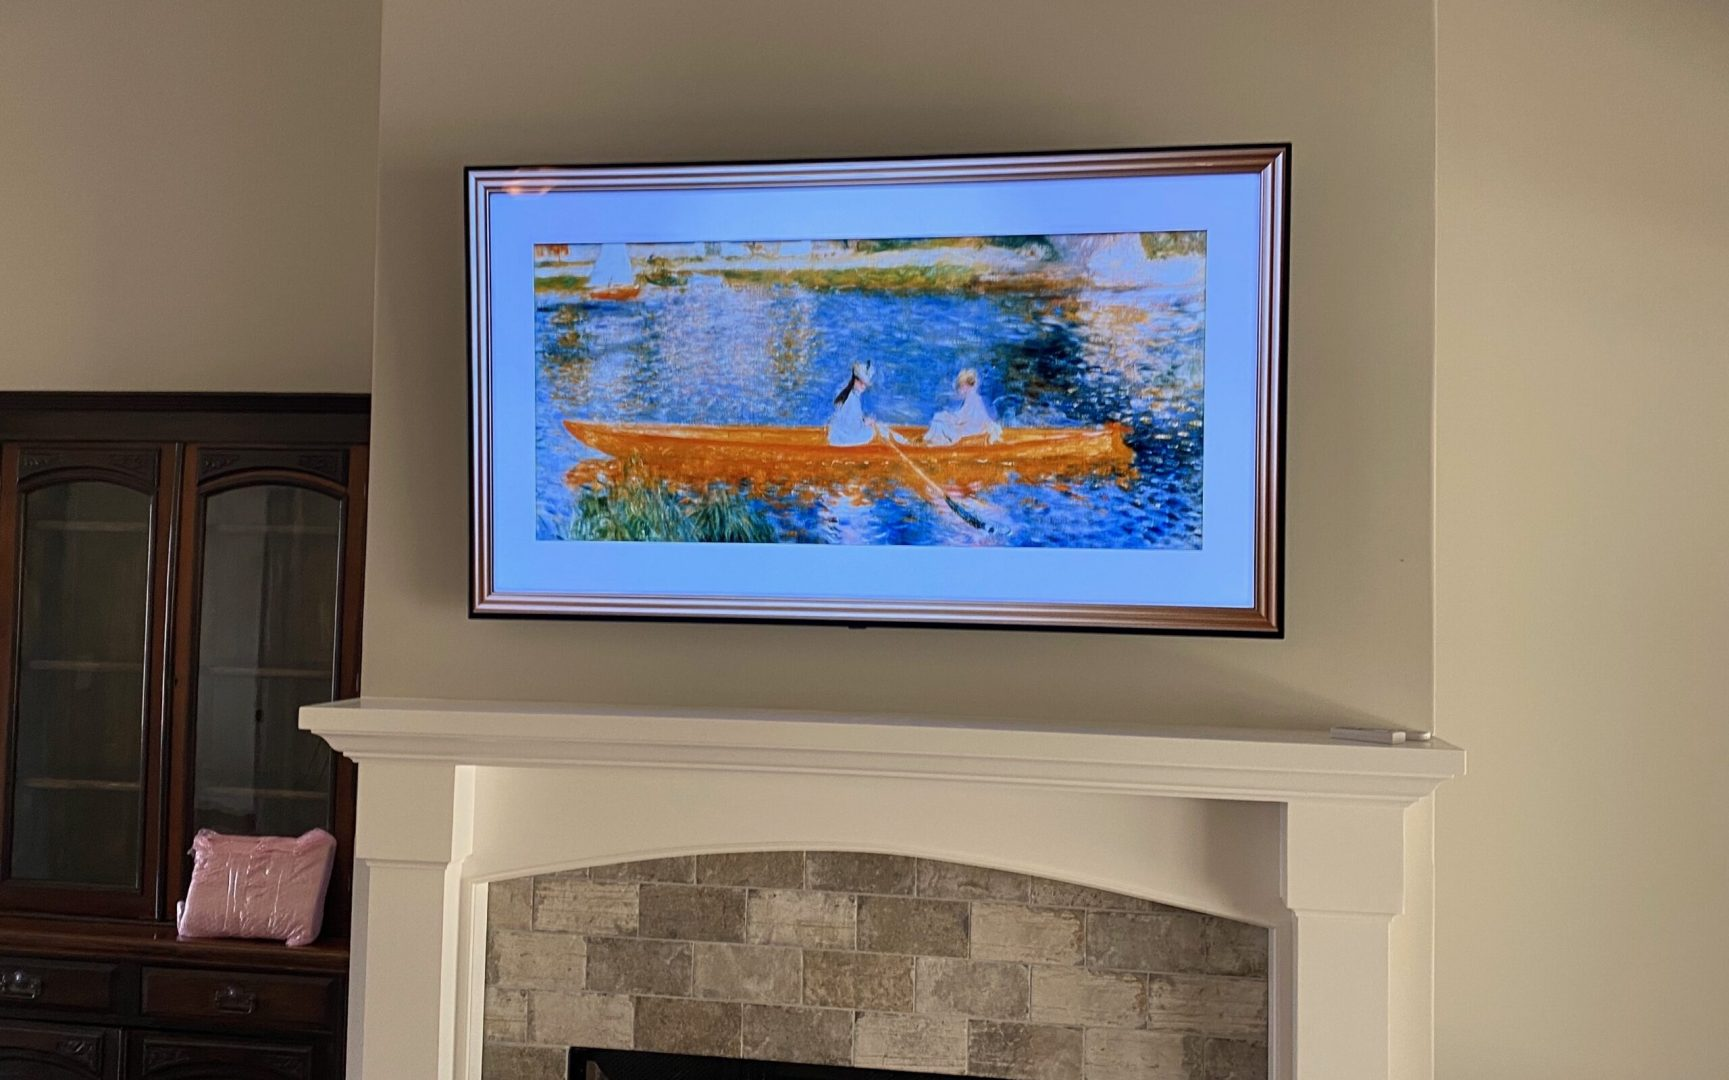 TV mount and installation over fireplace